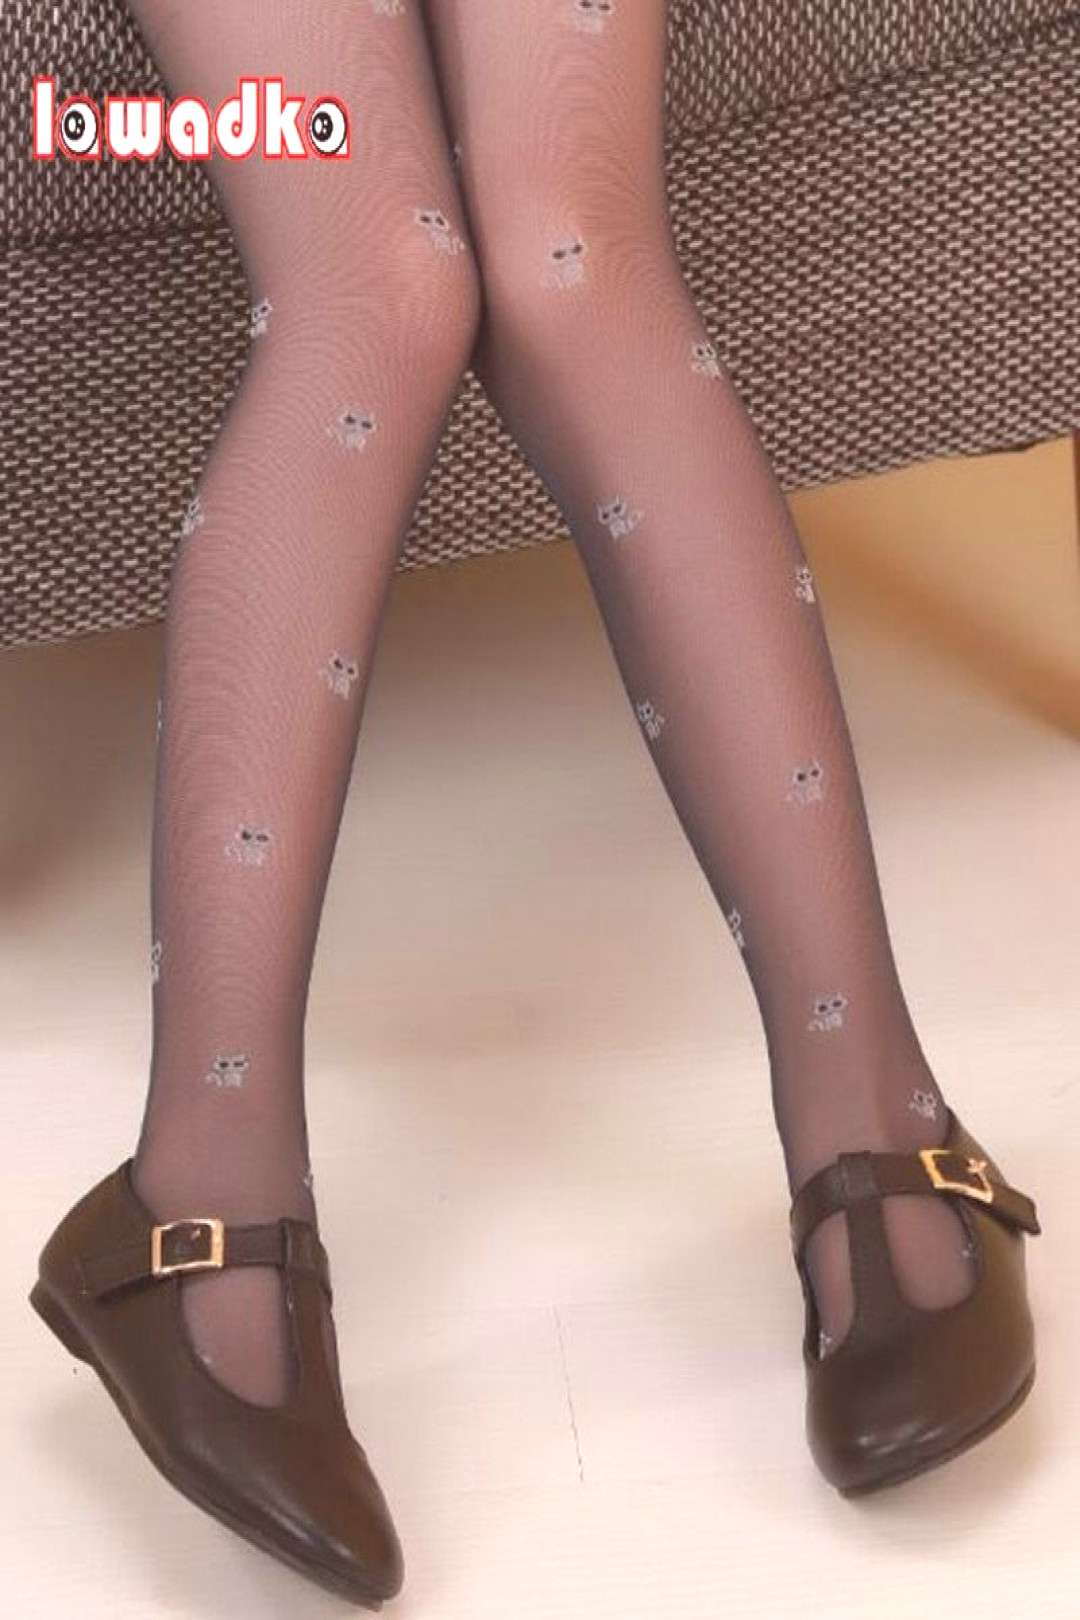 Lawadka New Kids Girls Tights Candy Colors Cute Cat Tights for Baby Children Pantyhose Stocking Sum